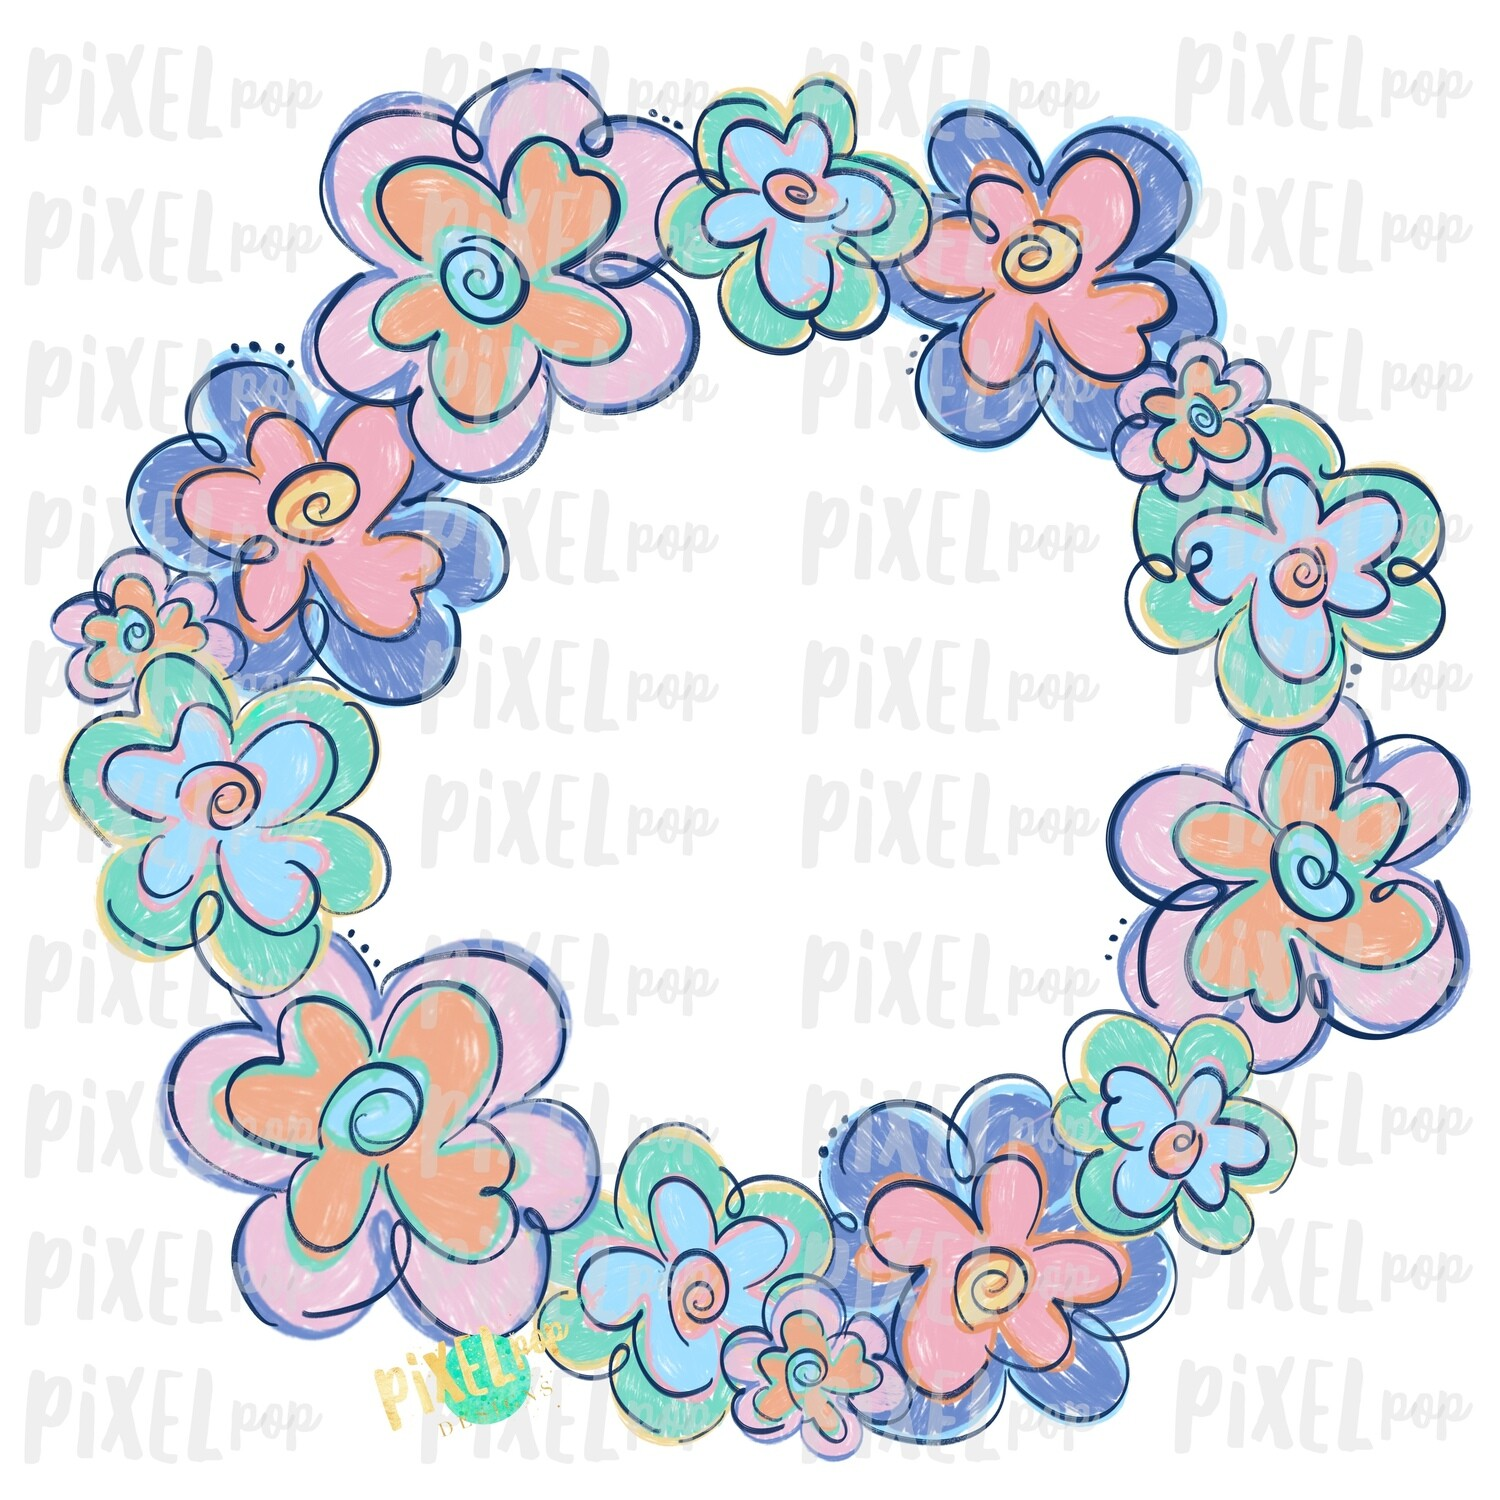 Funky Flowers Wreath Pastel Sublimation Design PNG | Digital Painting | Spring Flowers Design | Flower Wreath | Watercolor Floral Art